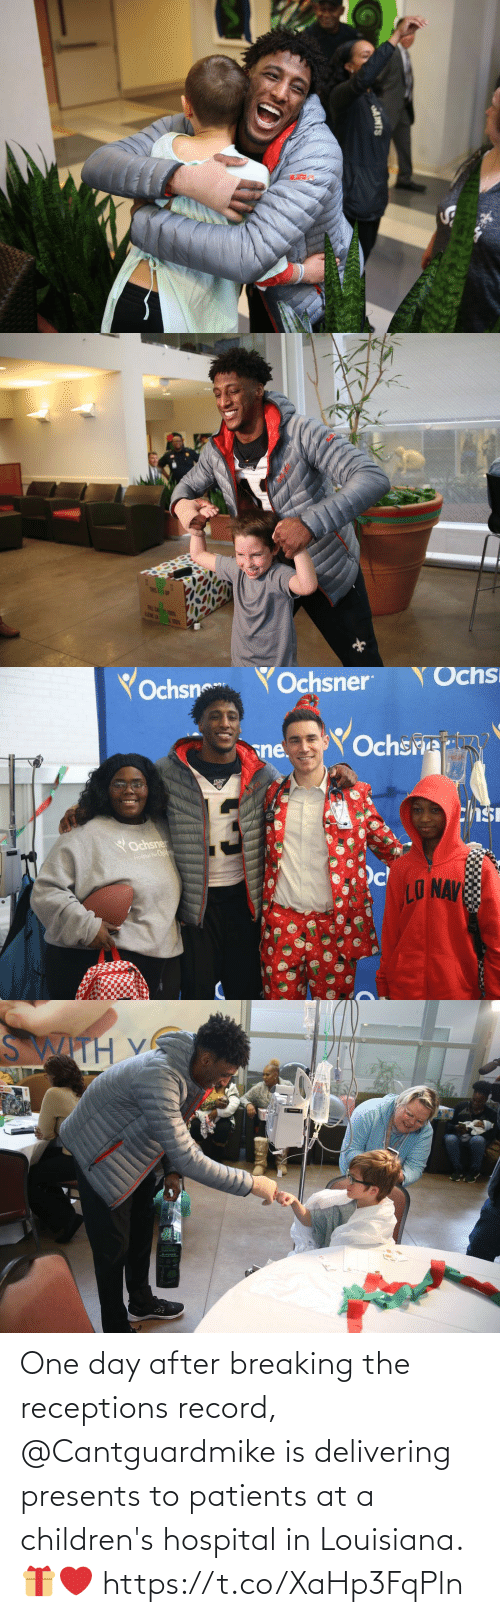 Hospital: AINTS   TRIS! 1P  FRLE CA T  LENE LA   Yochsn  YOchsner  Ochs  Ochsre  sne.  chsi  YOchsner  Hospai For Childwan  LO NAV   SWITH V One day after breaking the receptions record, @Cantguardmike is delivering presents to patients at a children's hospital in Louisiana. 🎁❤️ https://t.co/XaHp3FqPln